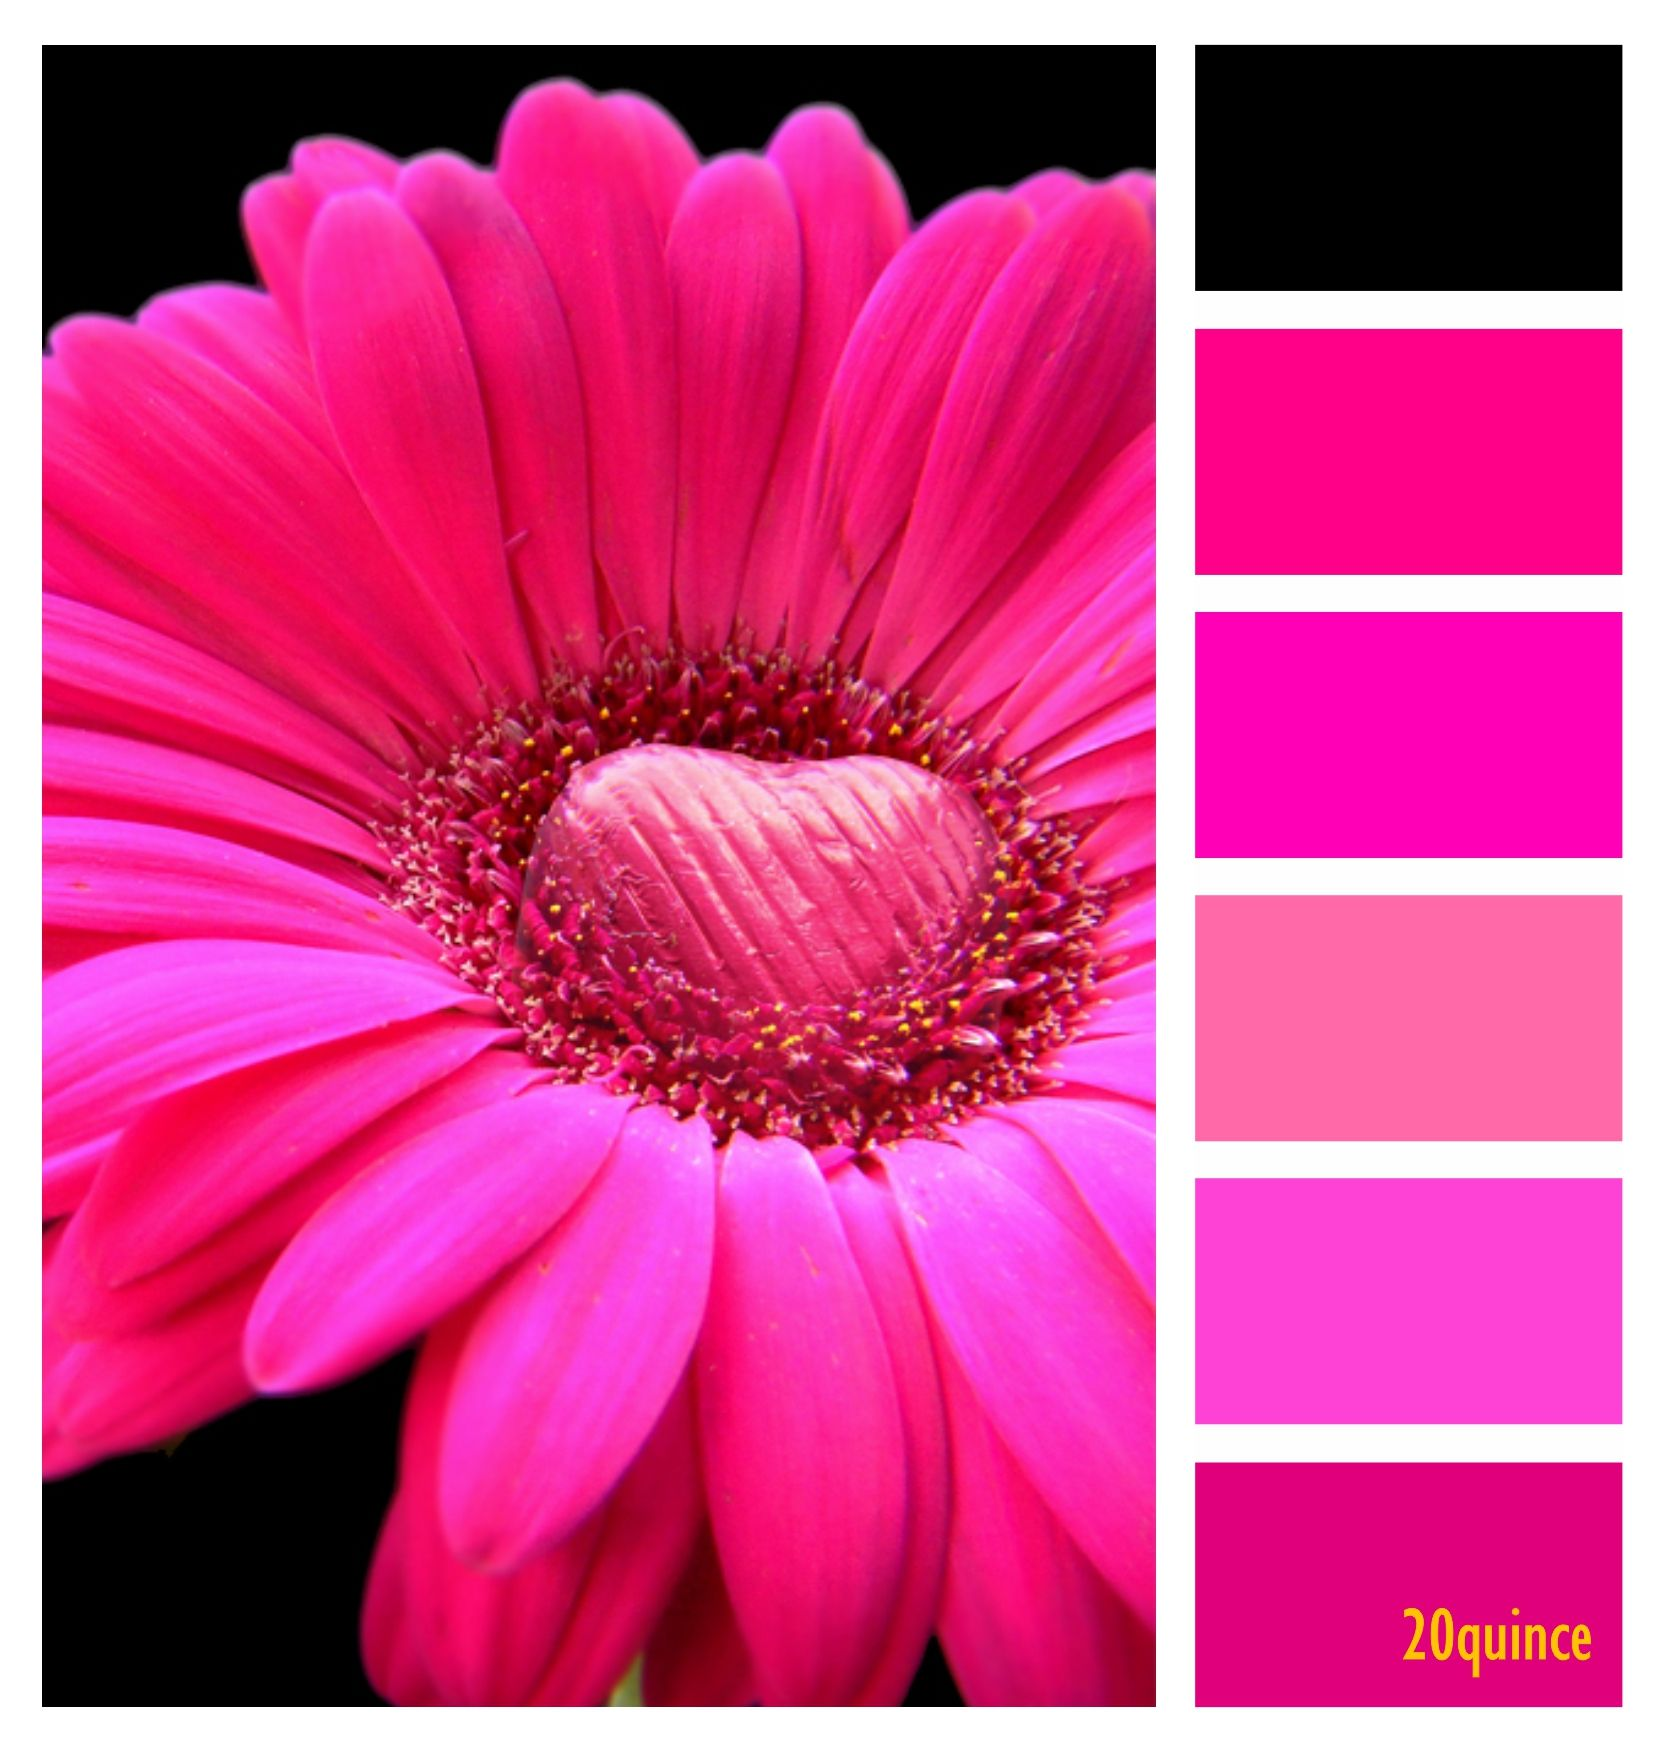 Pin by Z 🌸 on COLOR PALETTE [3] | Pinterest | Room colors, House ...